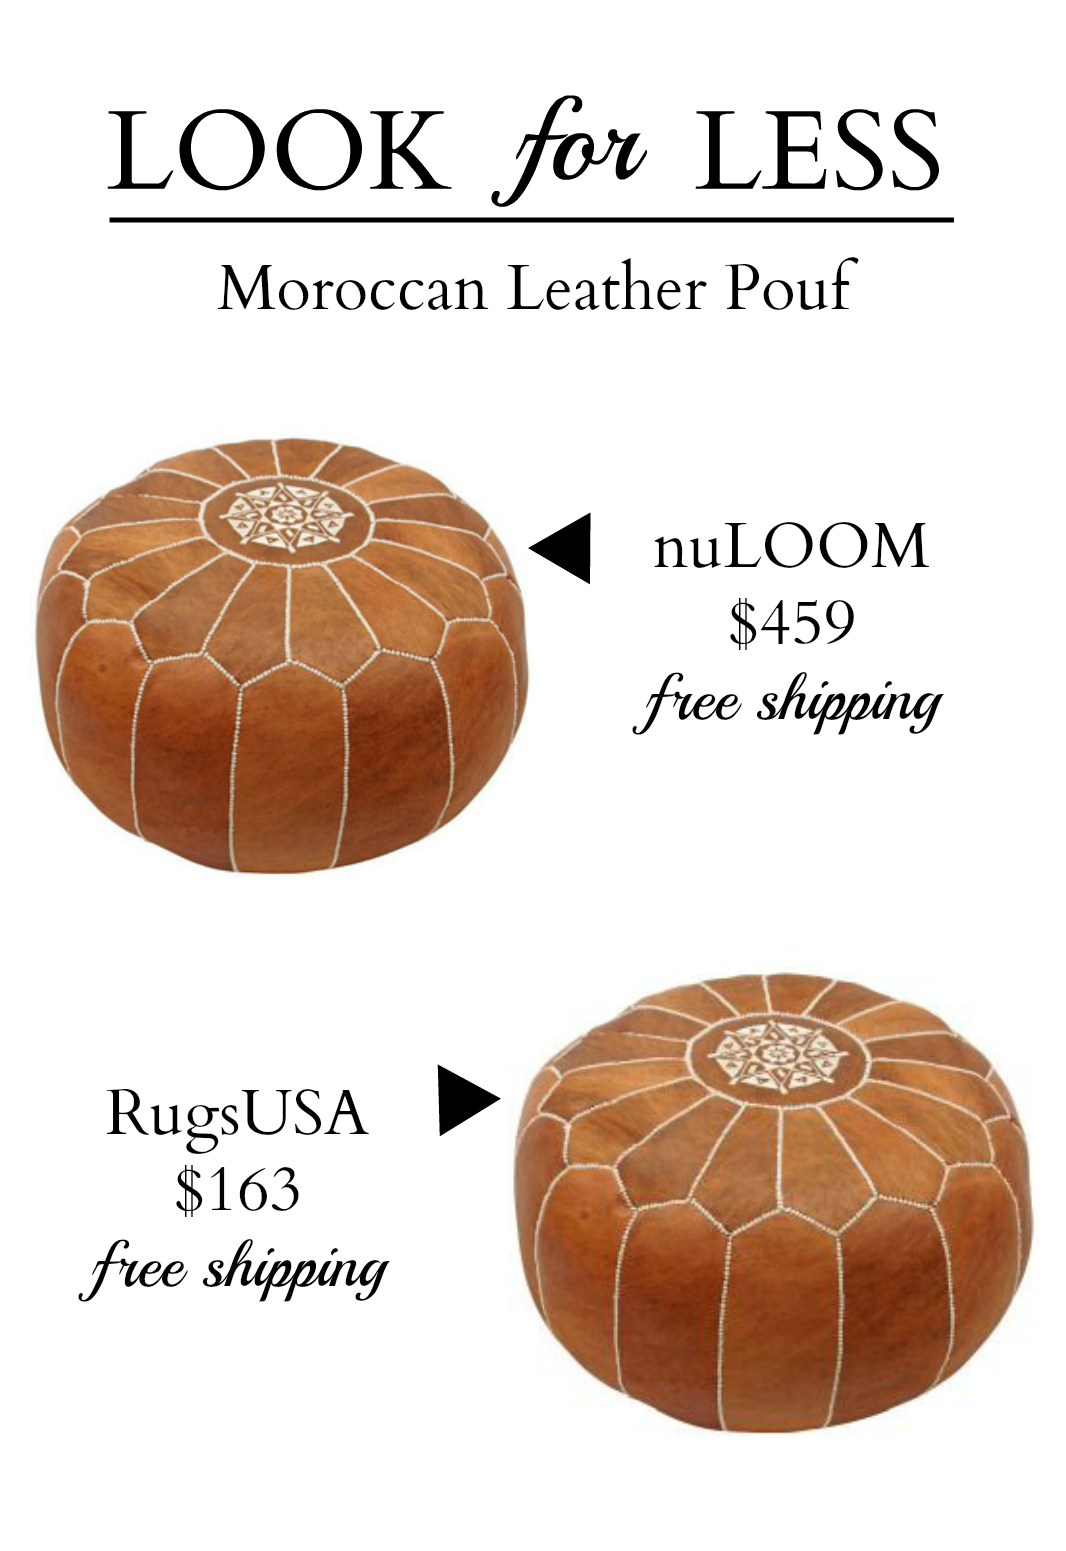 Moroccan Leather Pouf for Less